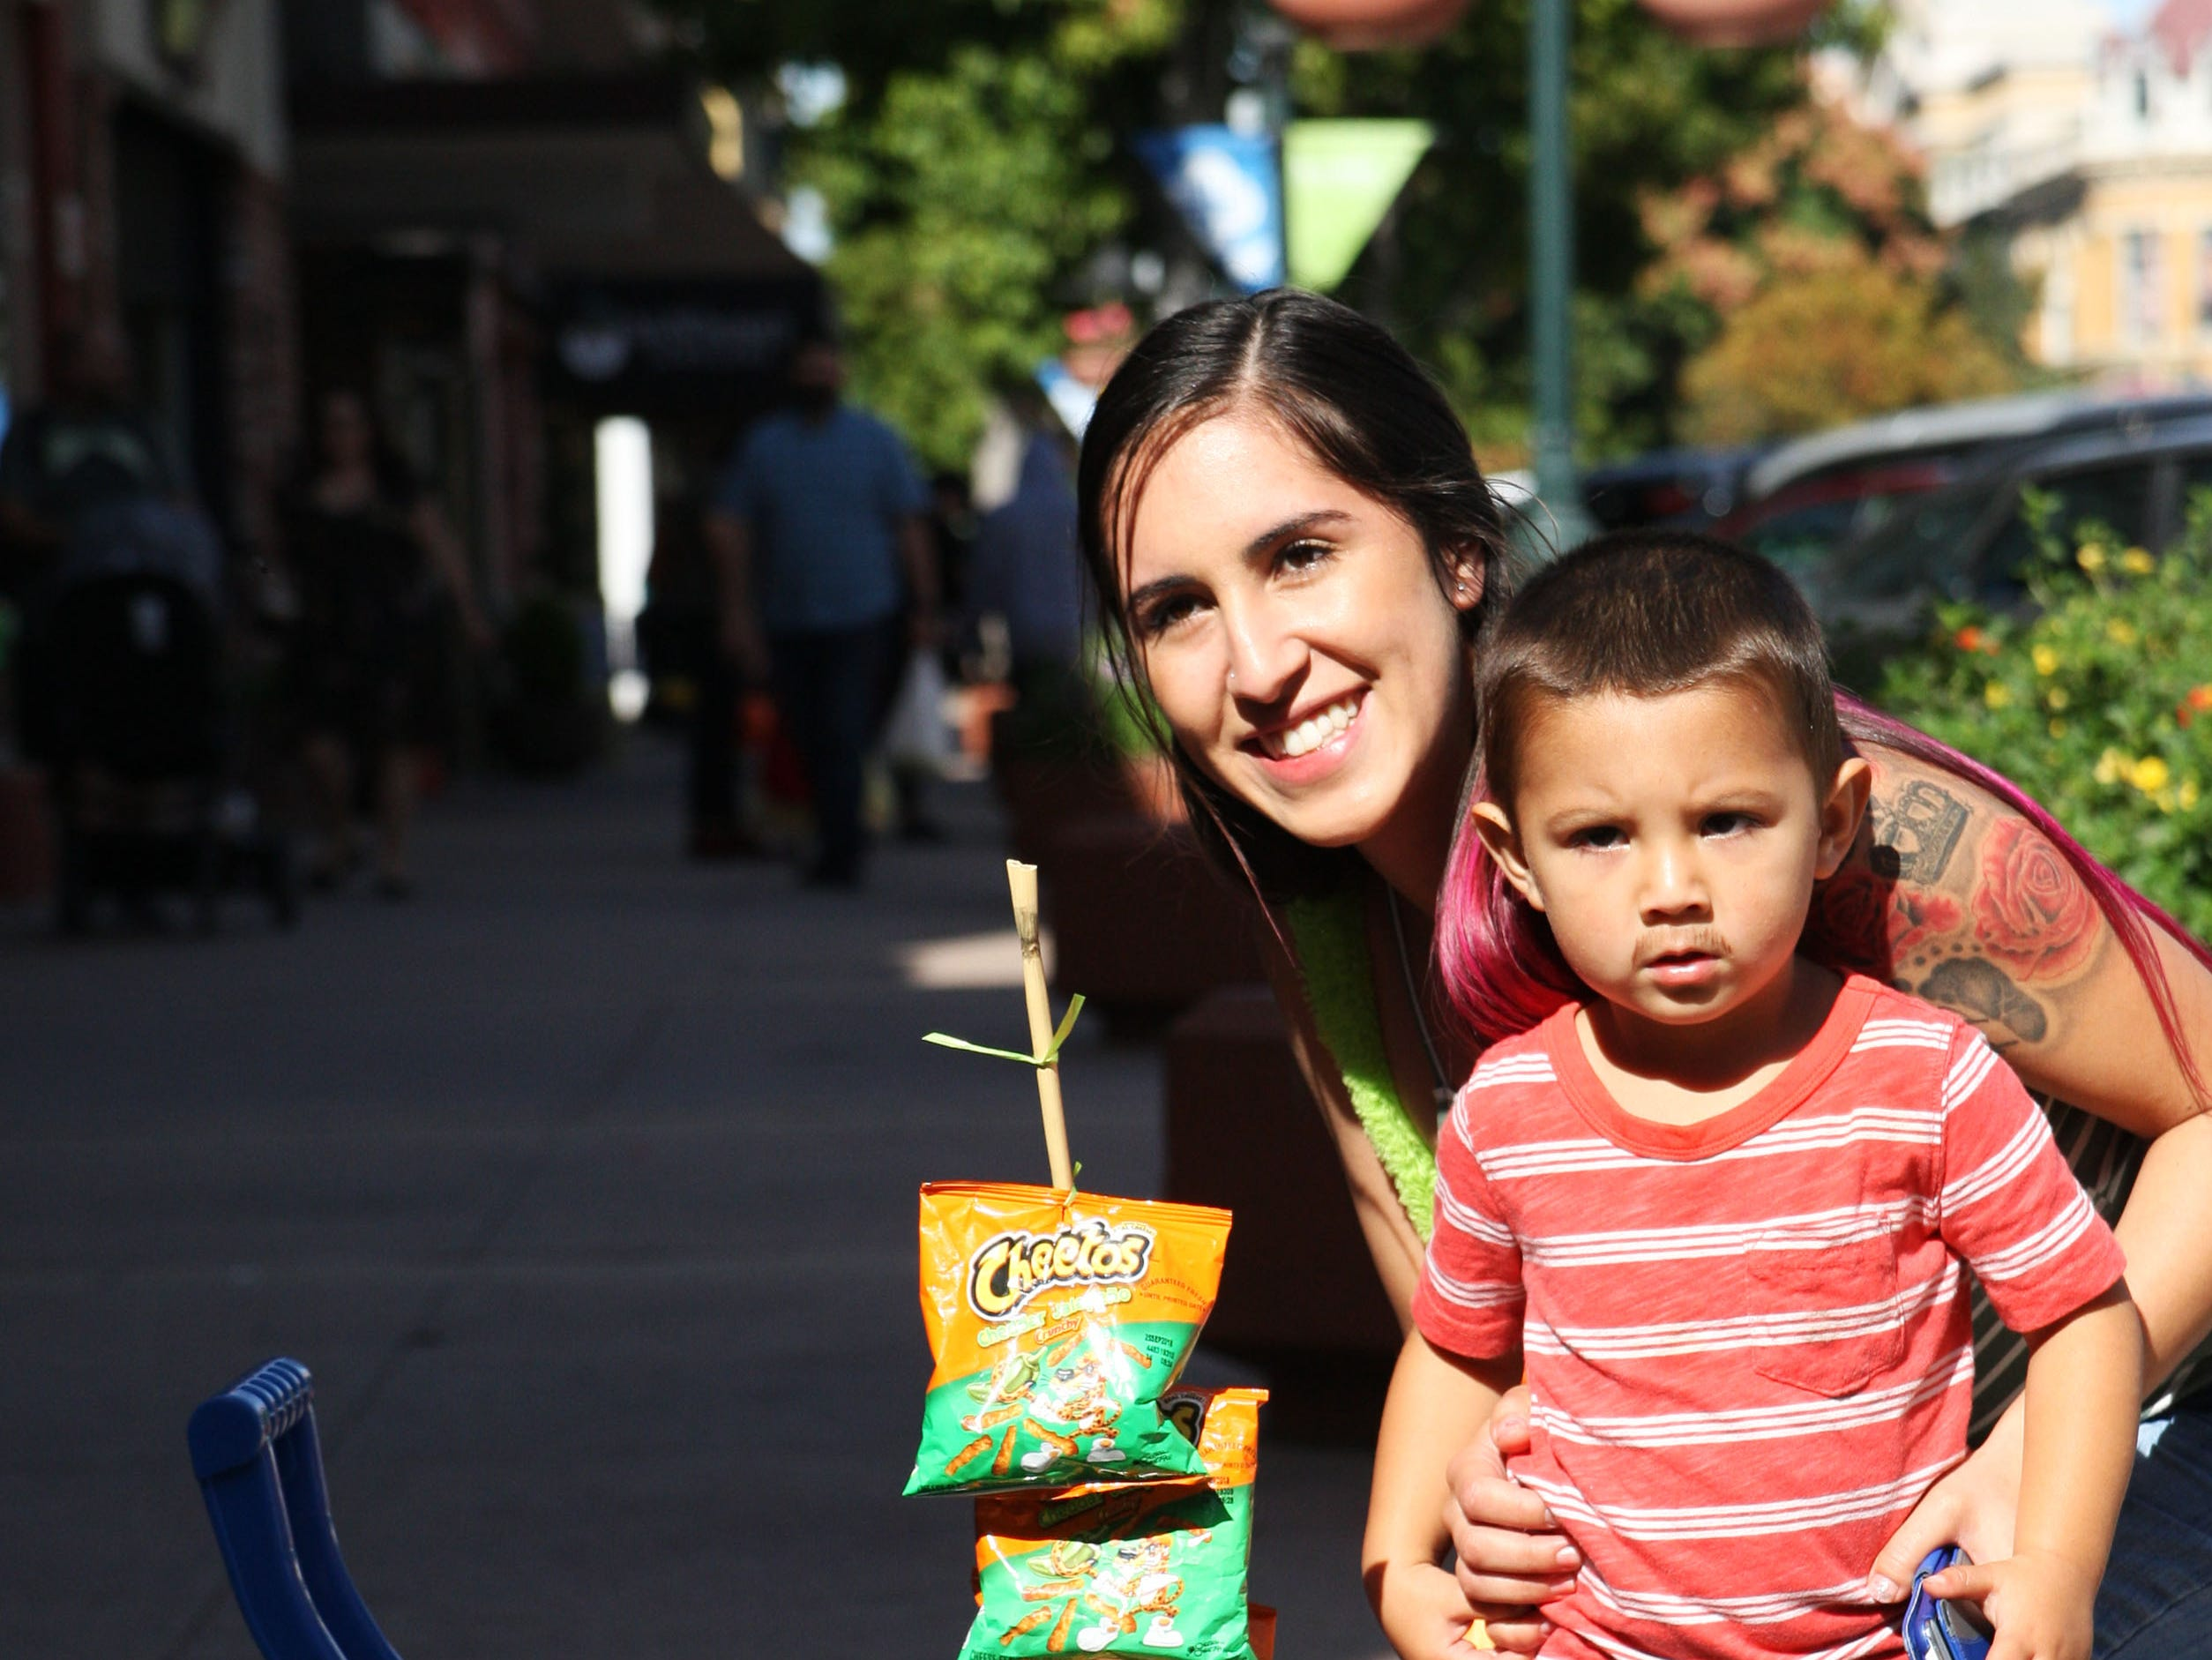 Brenda Samano holds her son, Angelo Raya, posing for a photo beside his paletero cart for trick-or-treating in Oldtown Saturday. Raya shows off his drawn-on mustache.